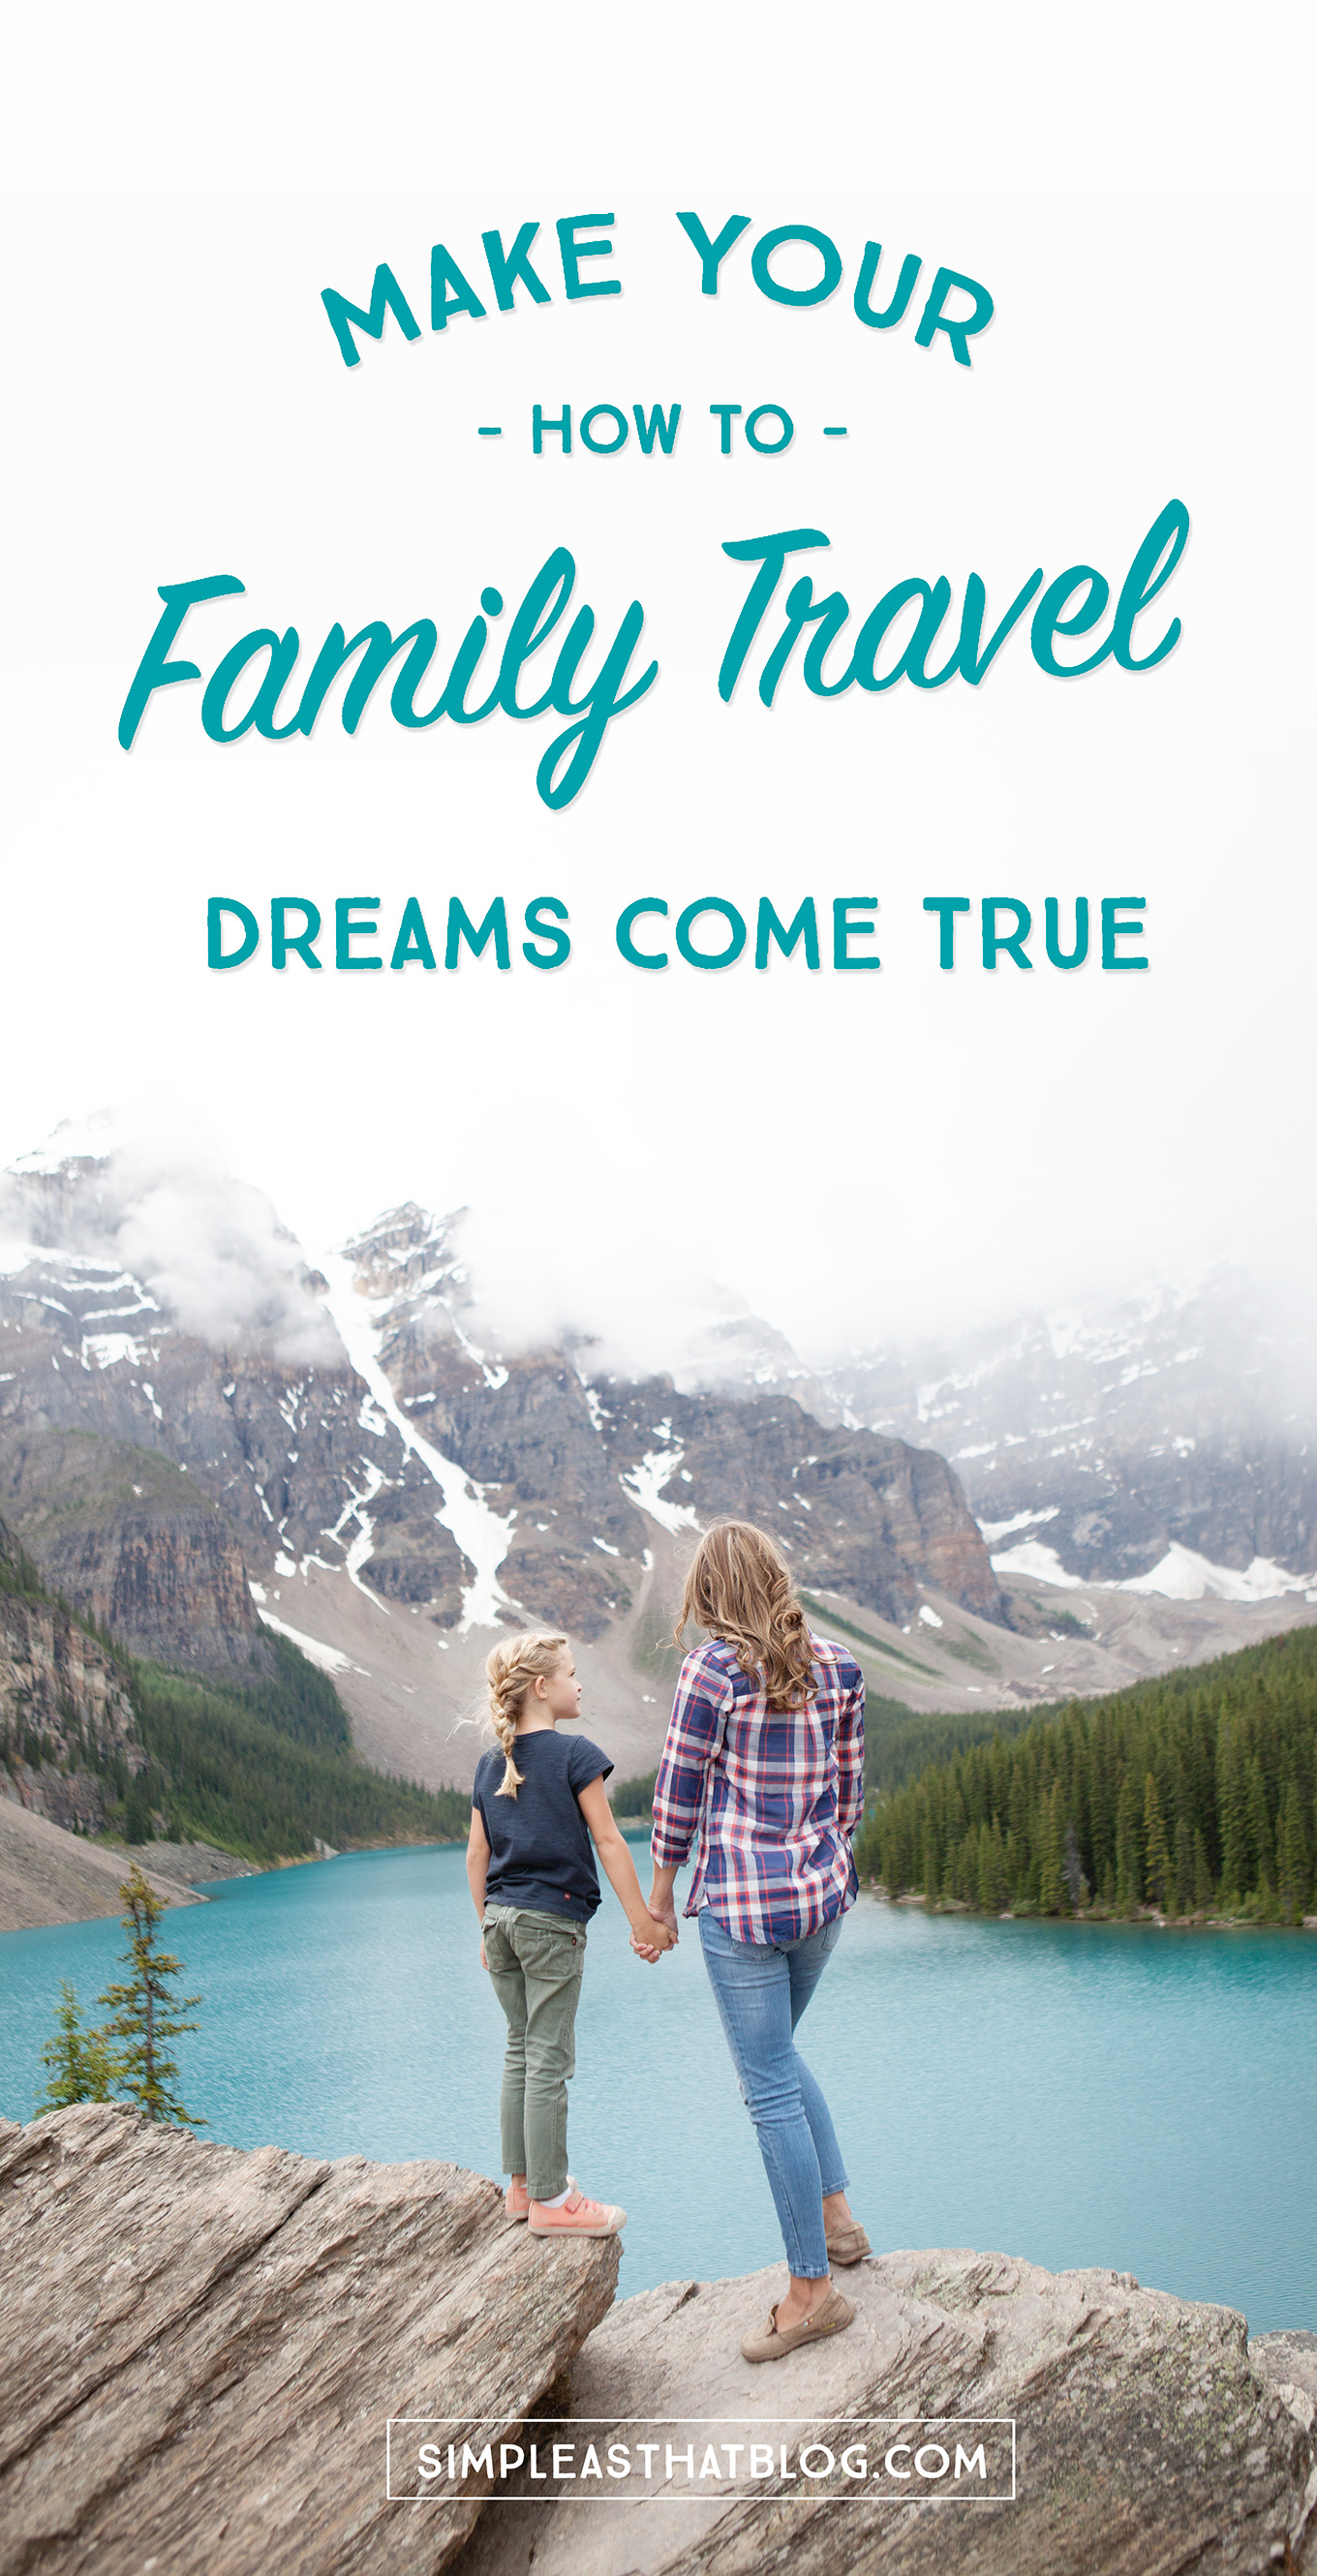 Does family travel sound like a far-off dream to you? Maybe not—with the right perspective. 4 Tips to Make Your Family Travel Dreams Come True